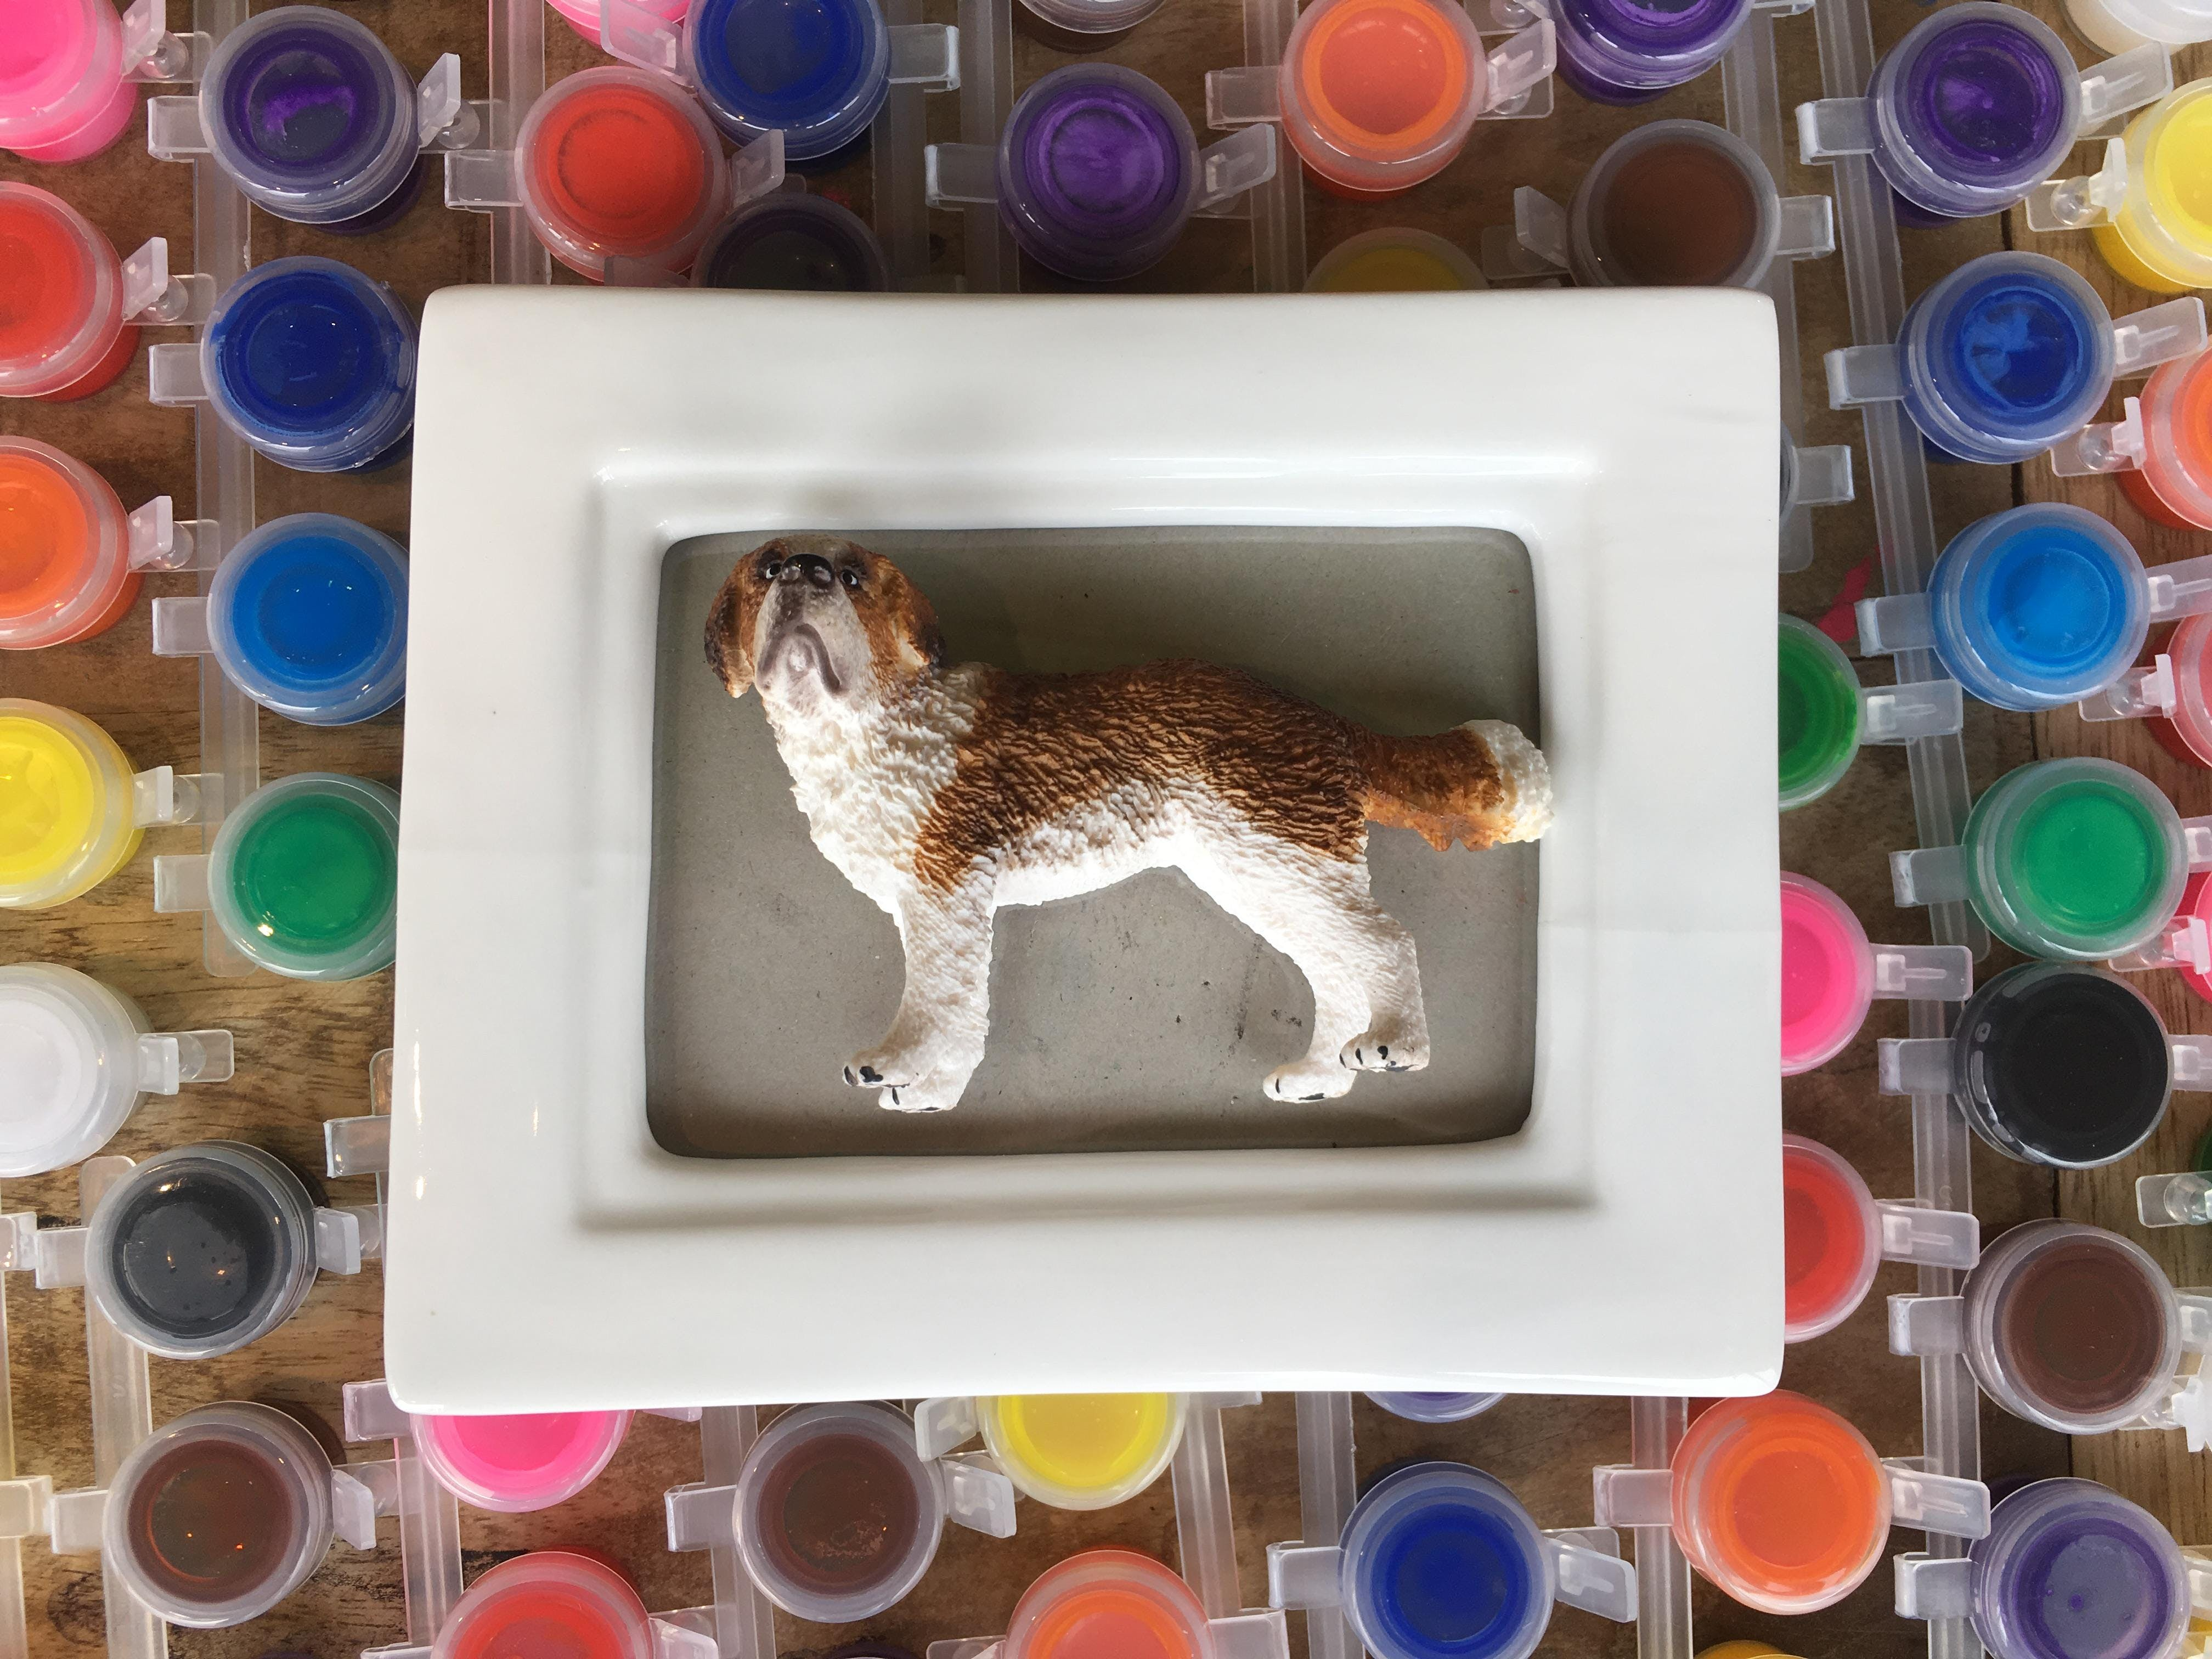 Make Take Paint Your Own Porcelain Picture Frame 12 May 2018